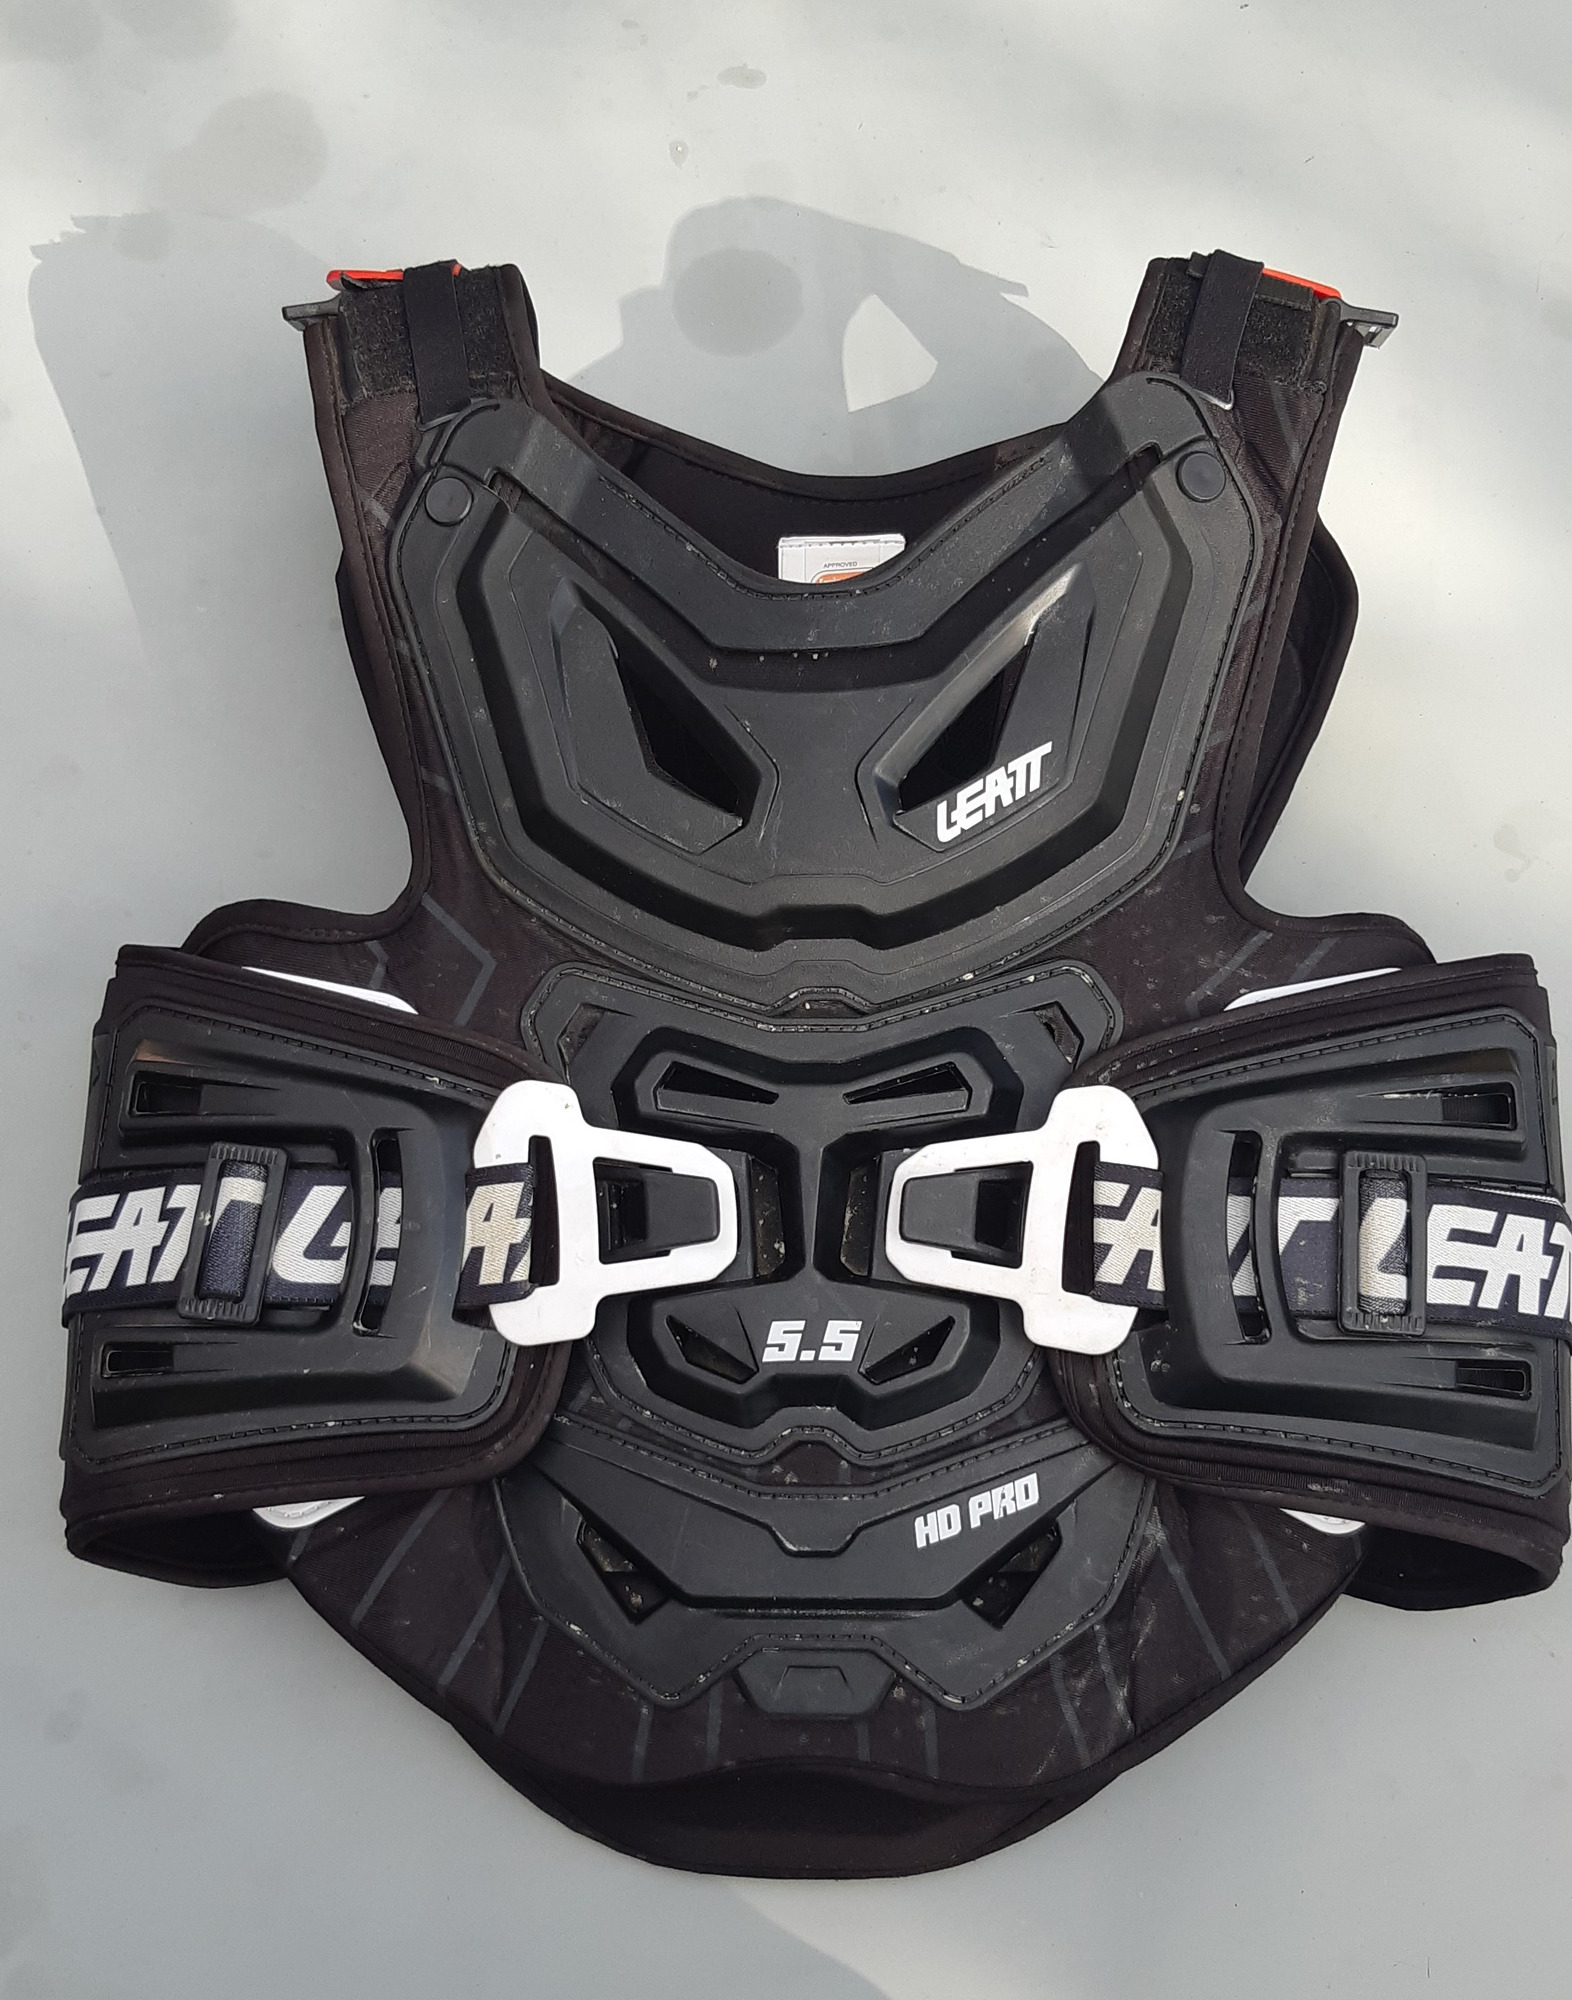 LEATT Chest Protector pro HD 5.5